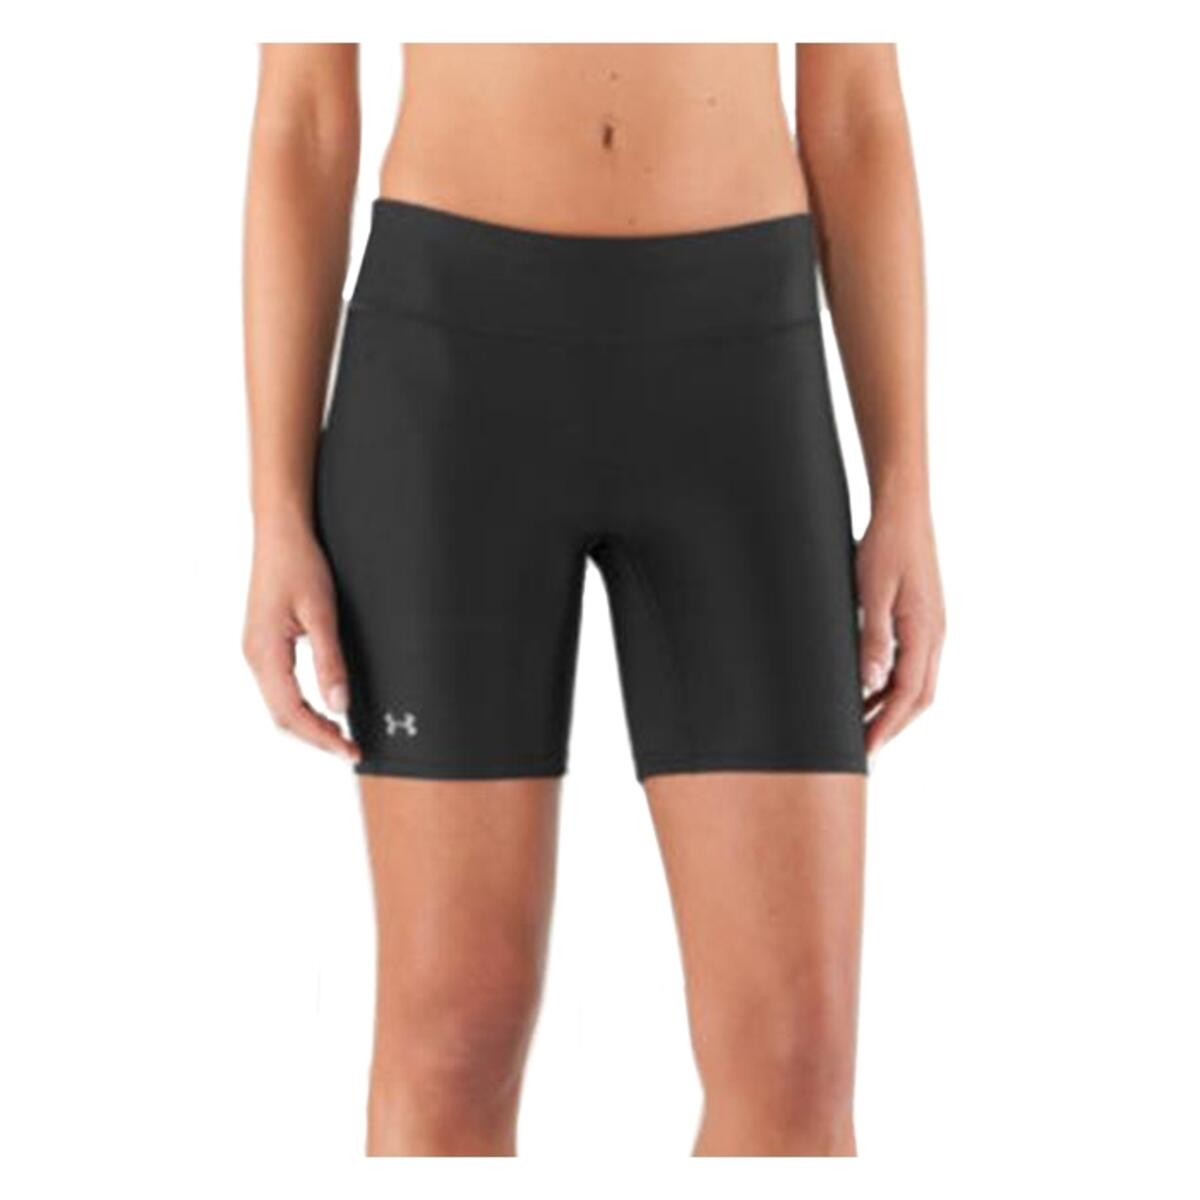 modern style special discount choose best Under Armour Women's UA Authentic 7-inch Compression Shorts